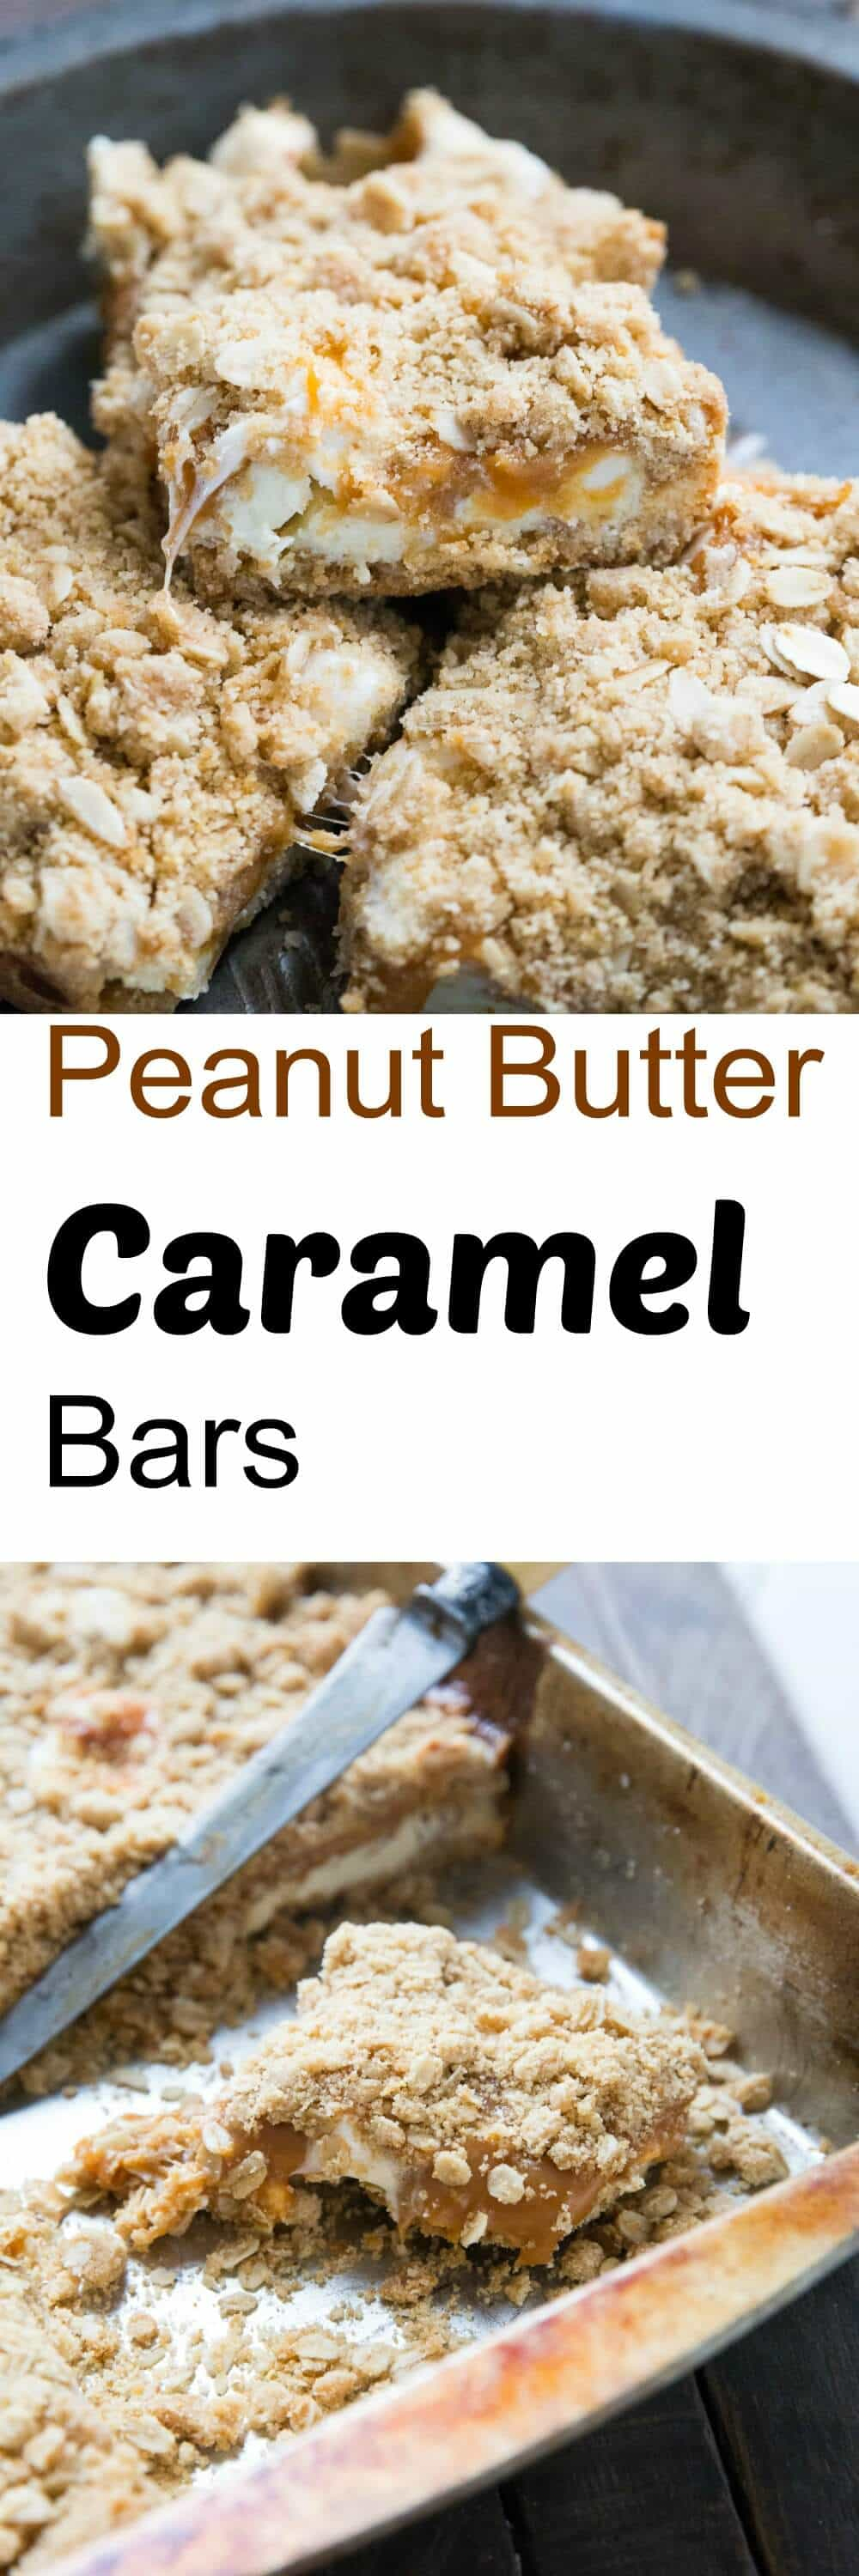 Oatmeal caramel bars have a silky peanut butter caramel layer and lots of white chocolate chips.  Each bite melts in your mouth!